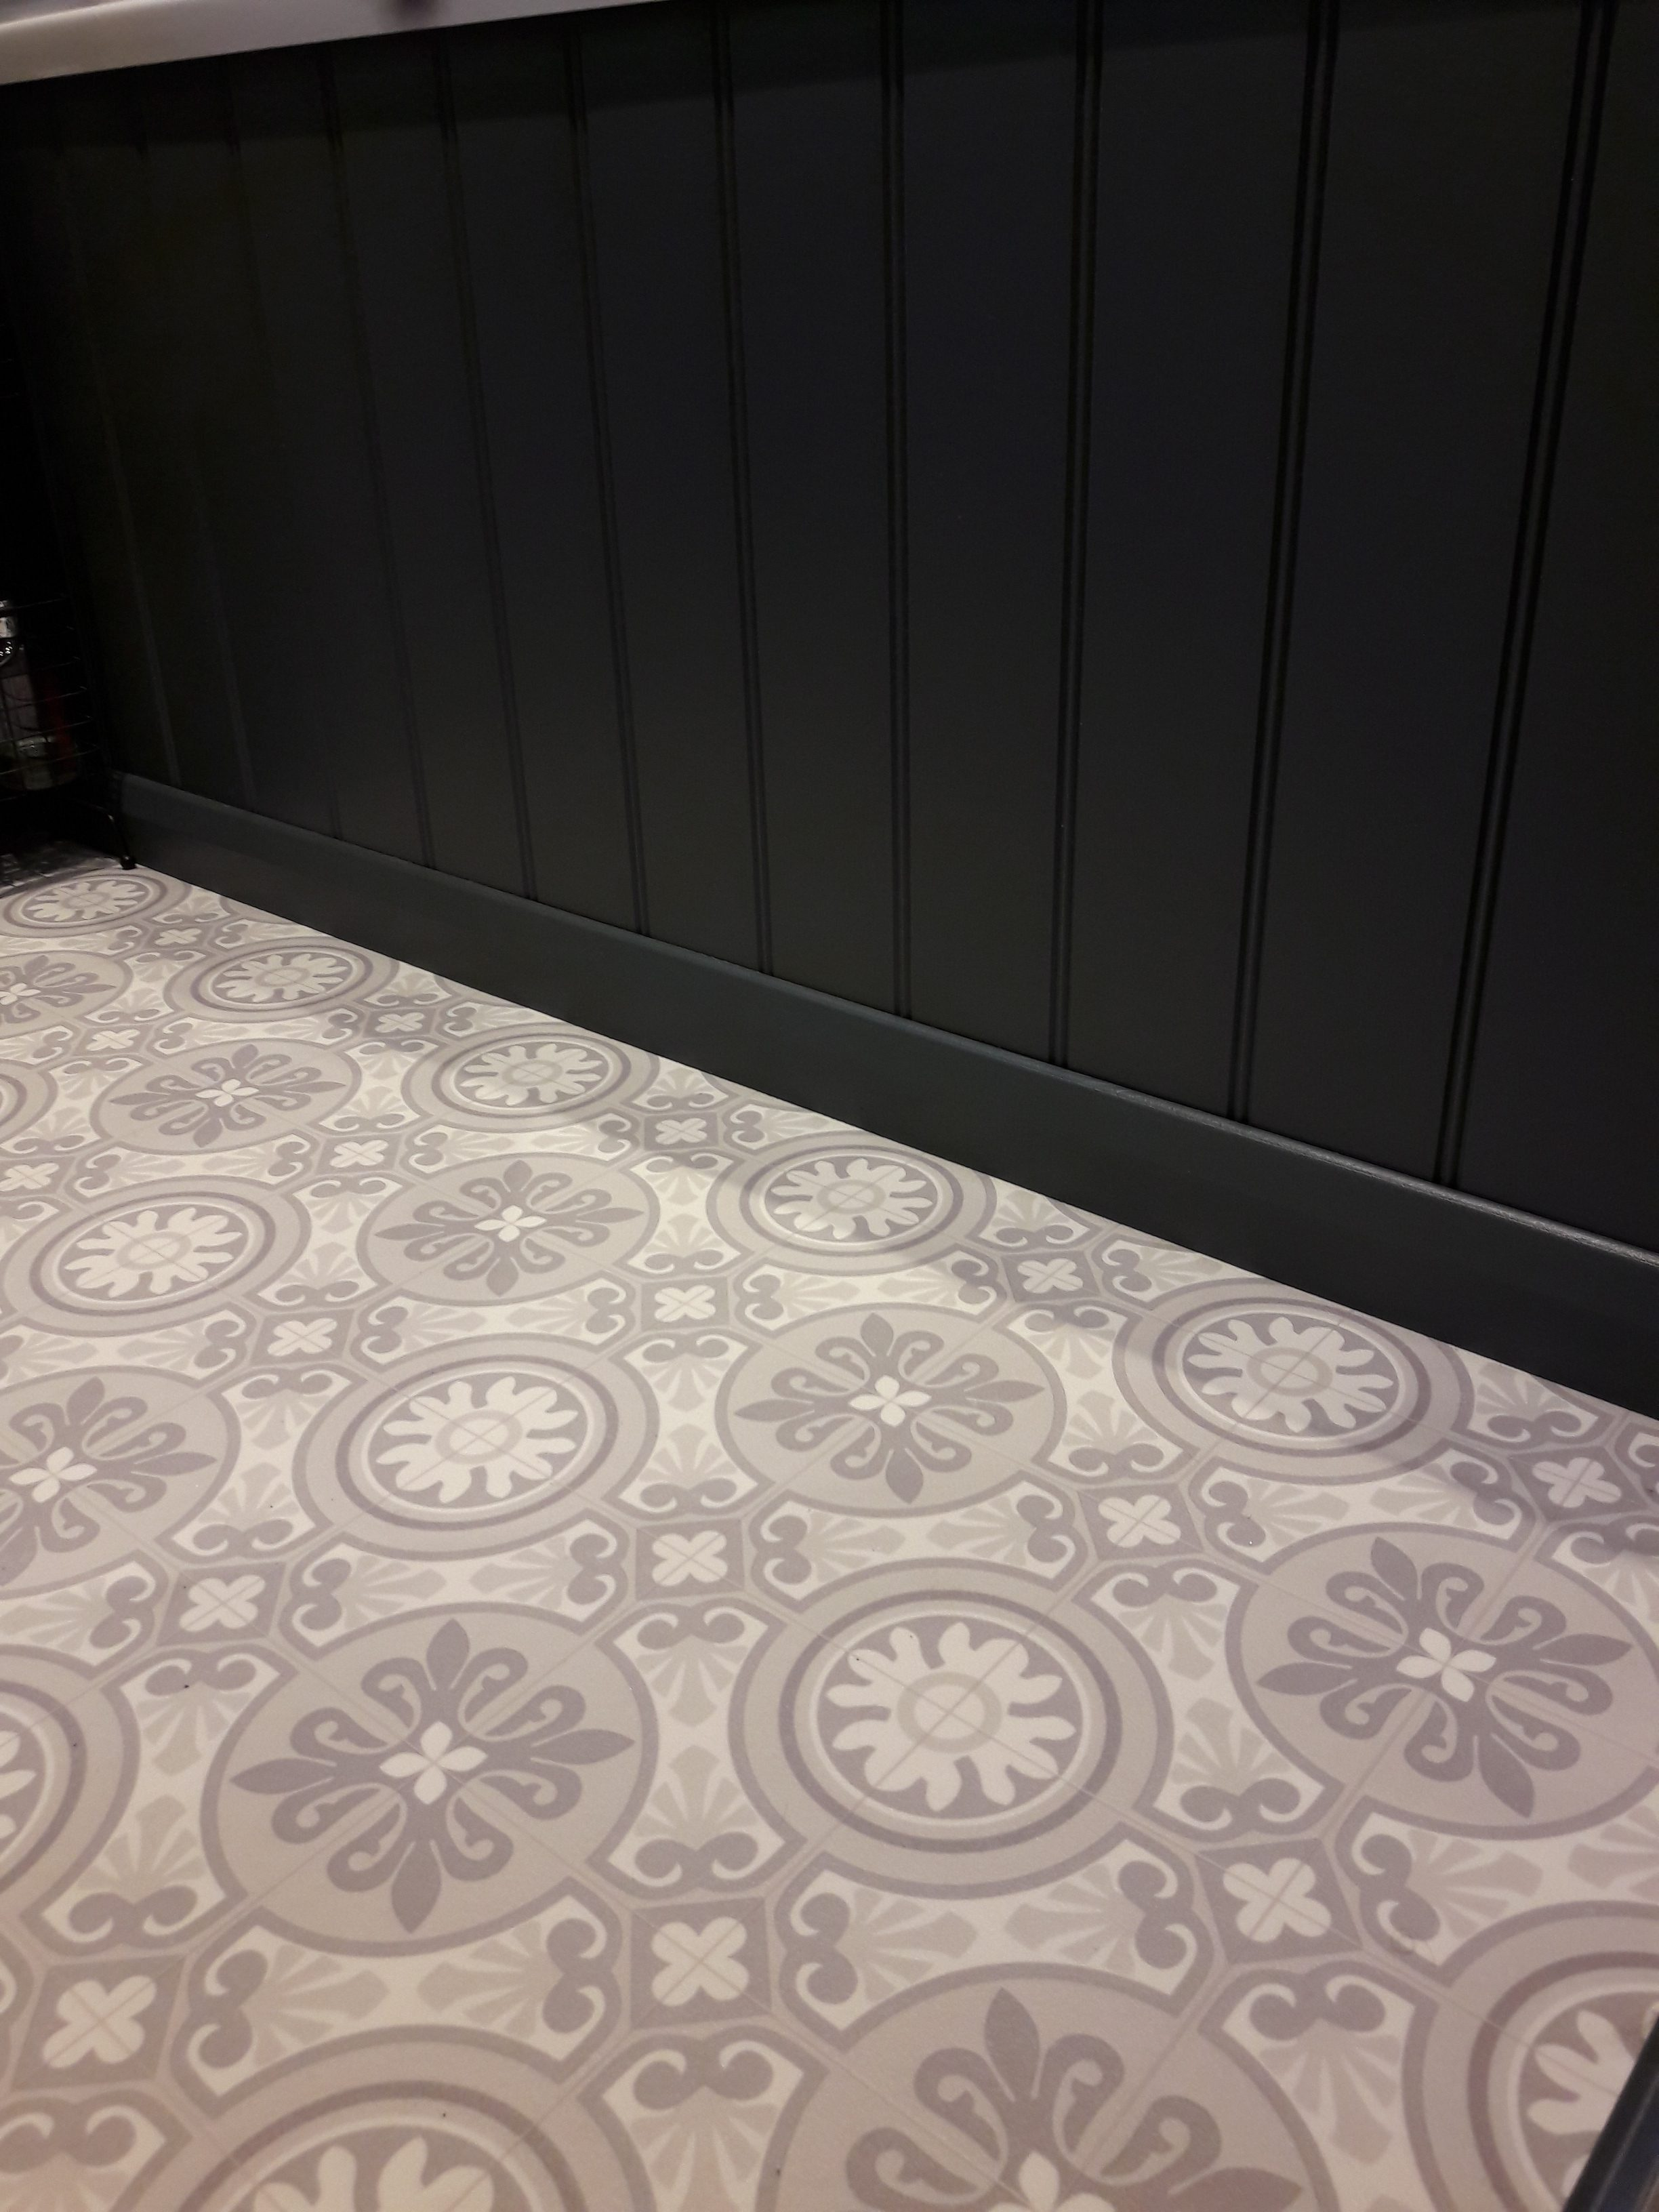 decorative tile vinyl in bathroom, west sussex